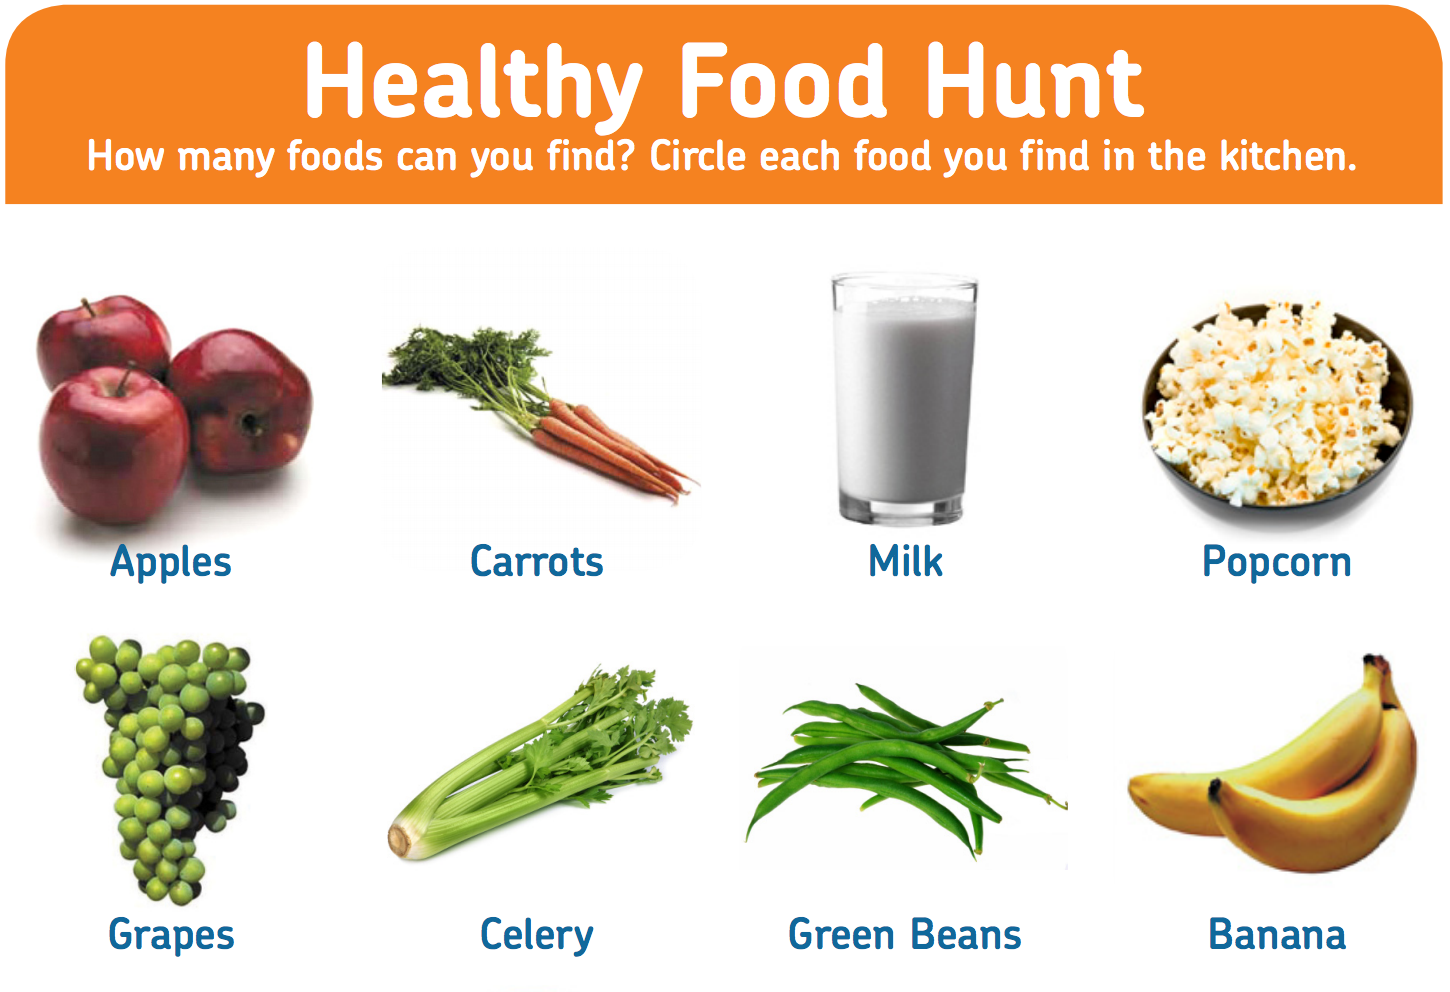 Teach Your Students Which Foods Are Healthy With This Fun